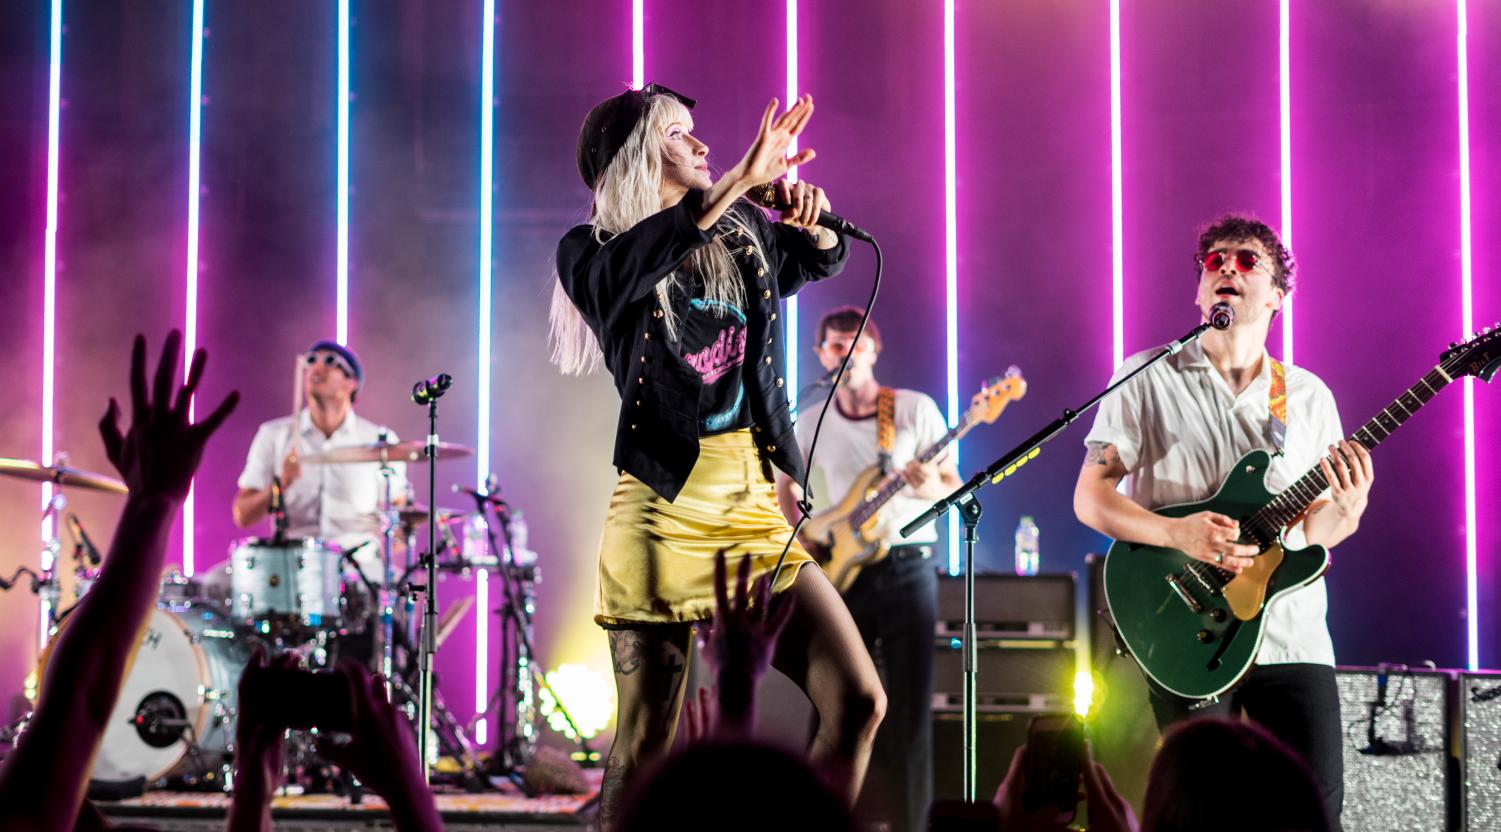 Paramore. Photo via Google Images under Creative Commons License.